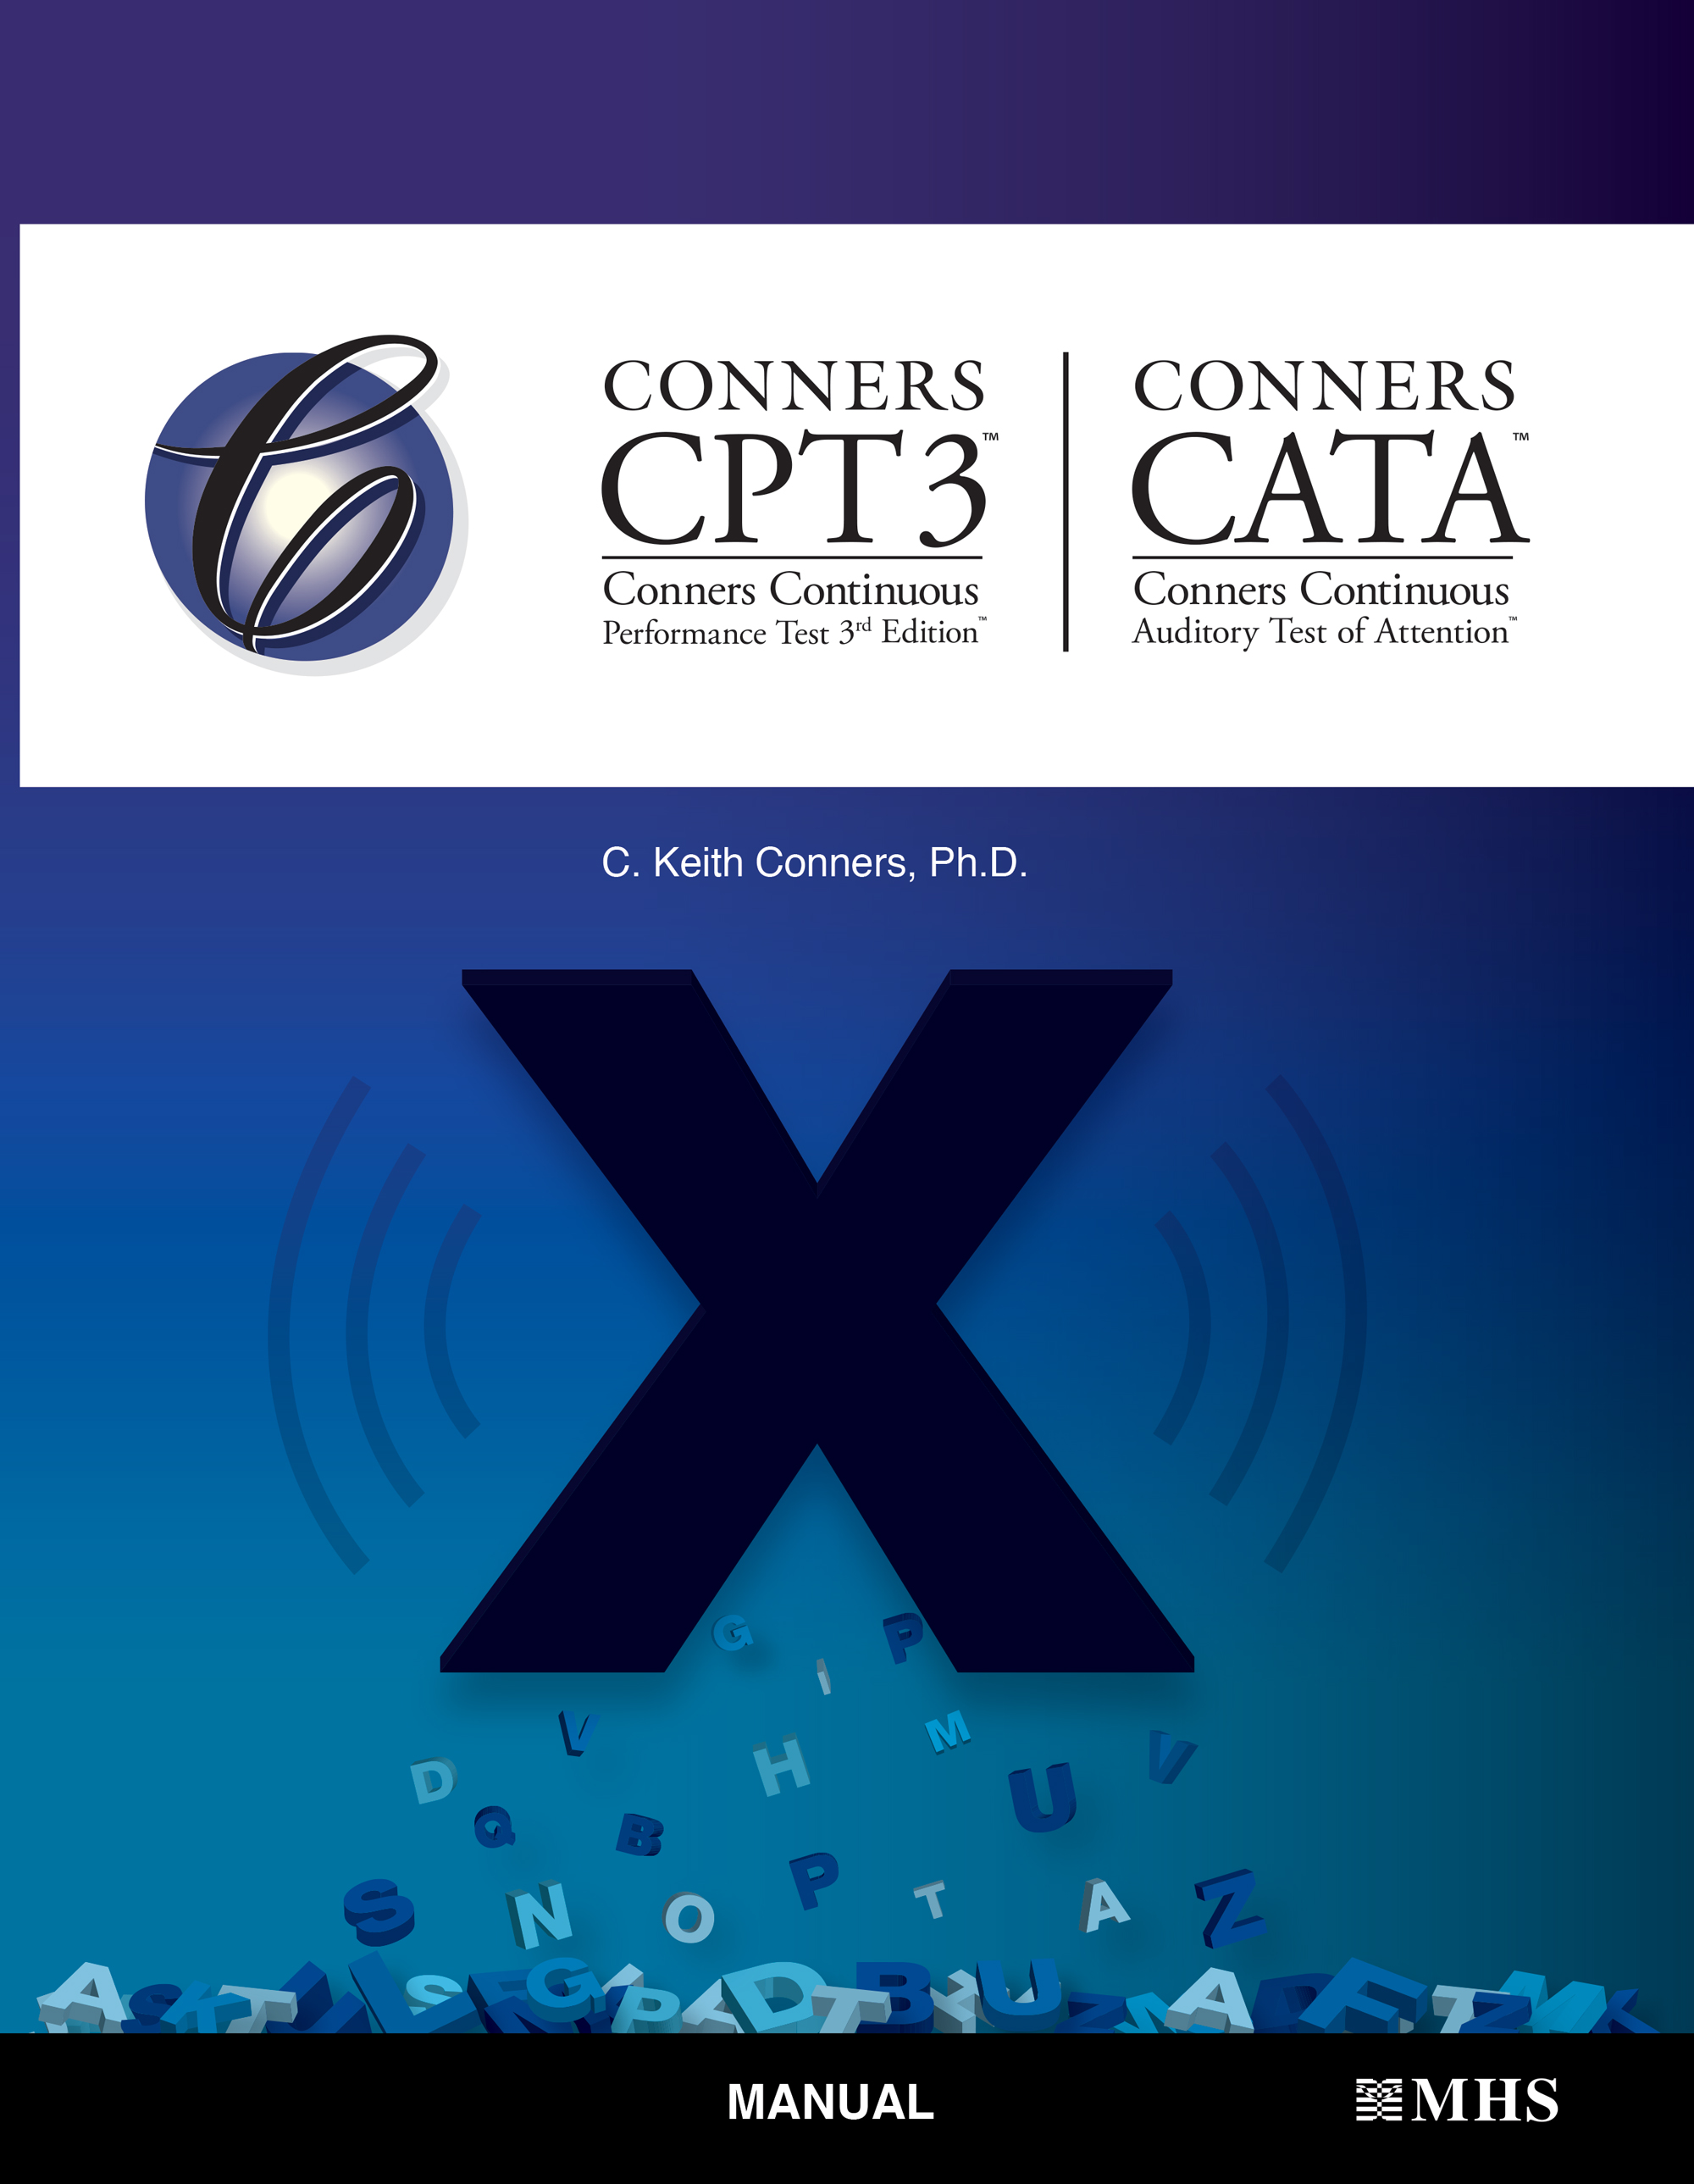 Conners Continuous Performance Test 3rd Edition and Conners Continuous Auditory Test of Attention